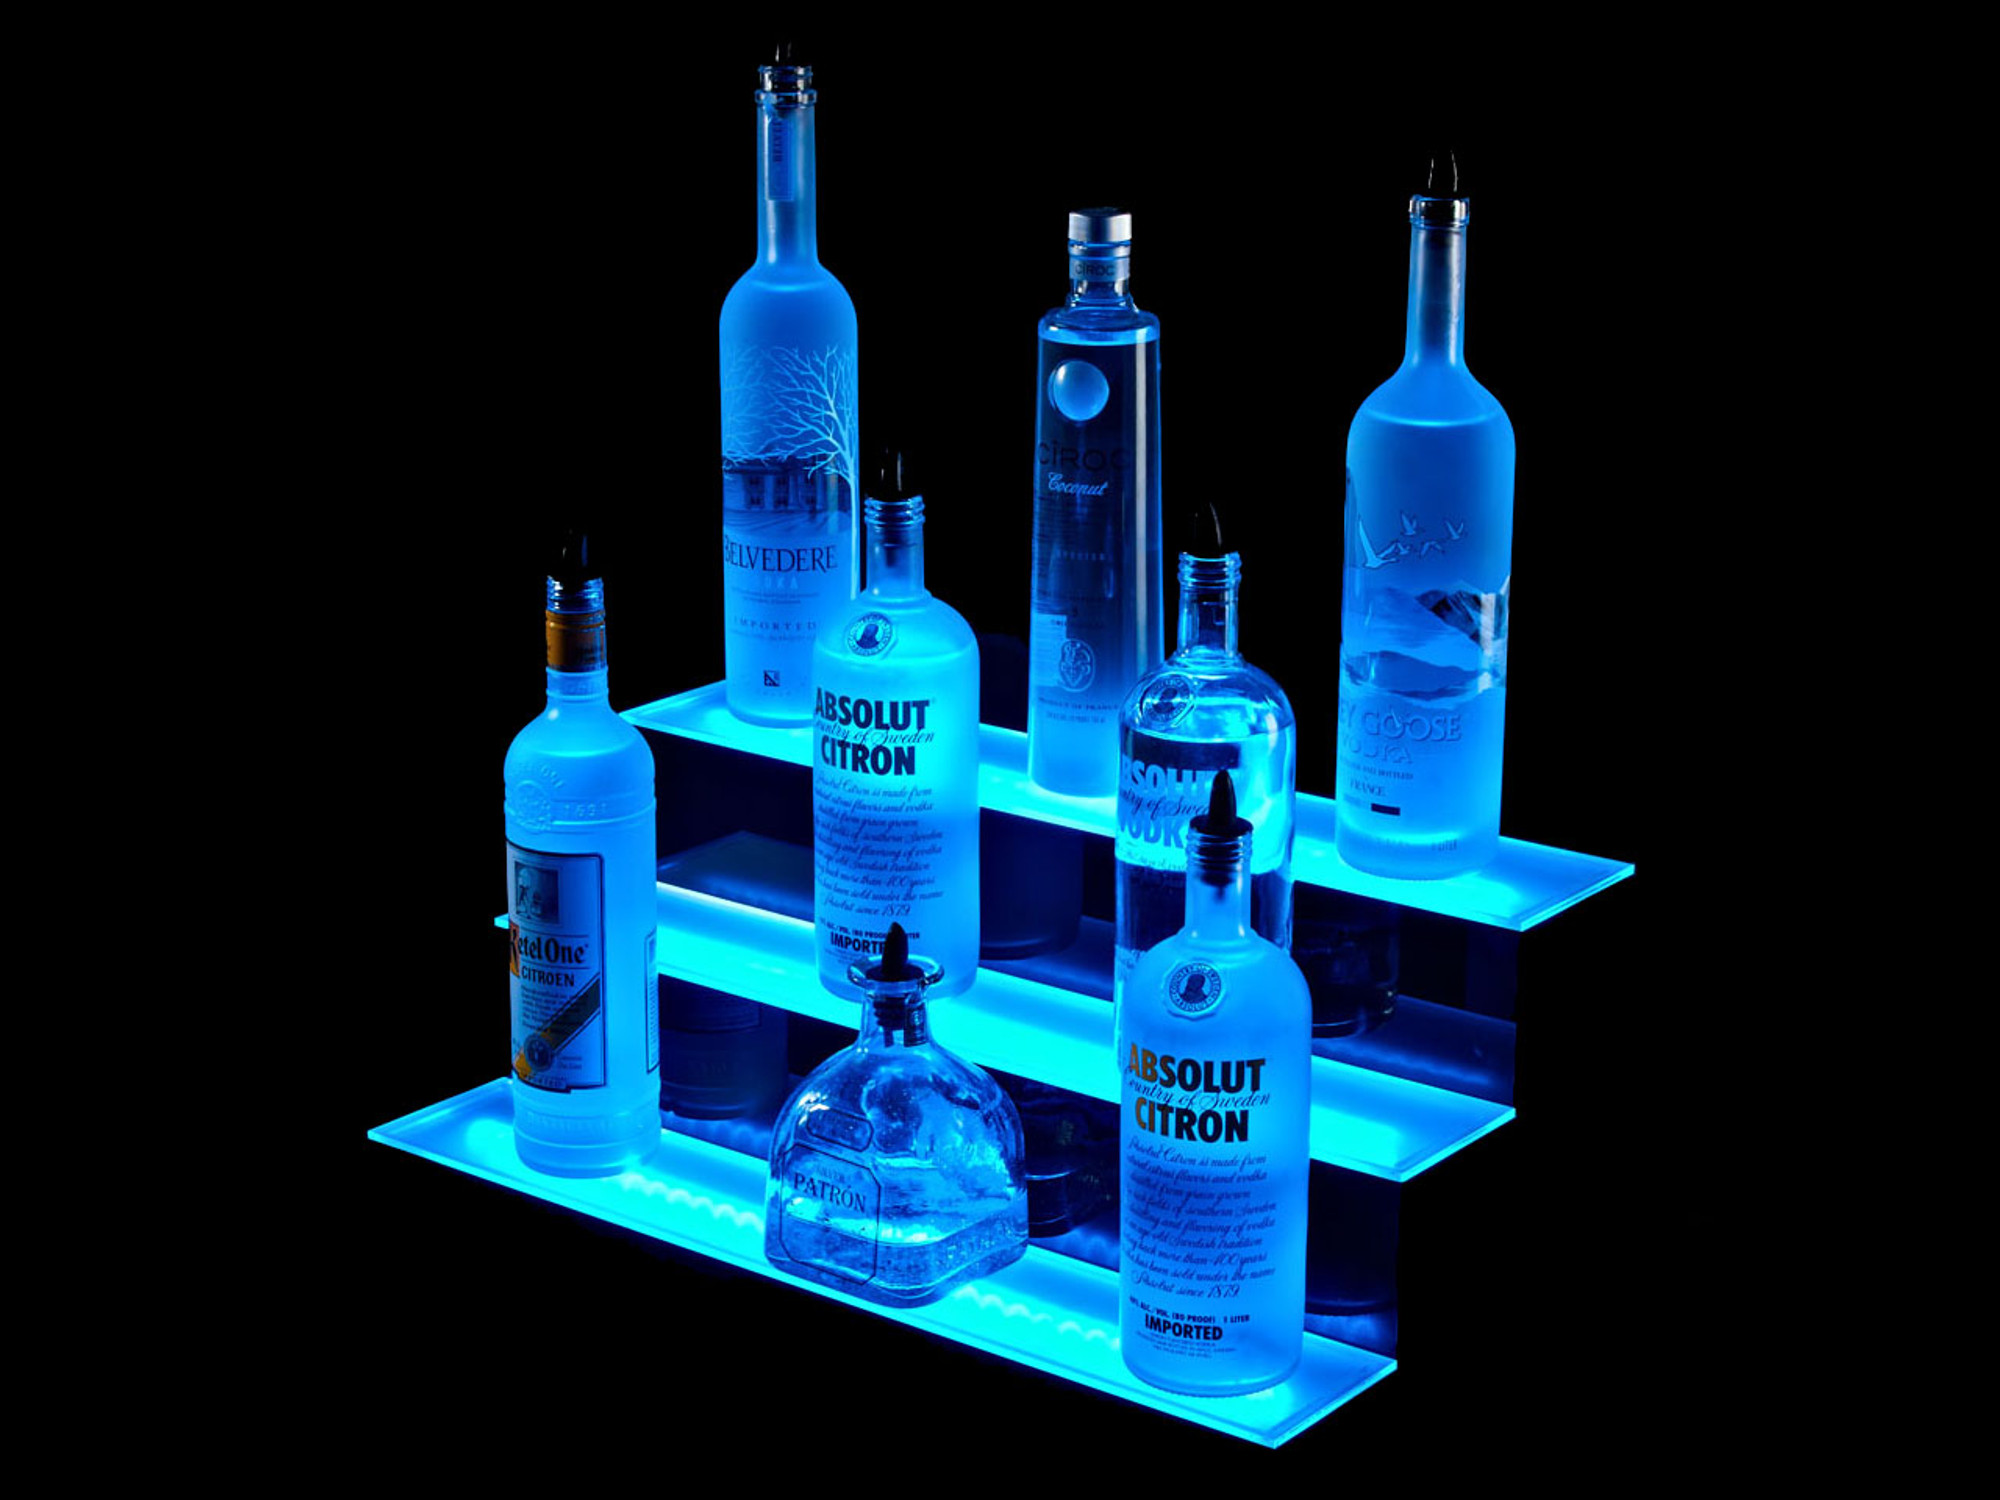 361969473841 additionally 2 Tier Led Liquor Shelf Display likewise How To Build A Tron Bar That Daft Punk Would Hang Out At together with 360826670040 in addition Led Strip Lights. on liquor shelves for led light strips